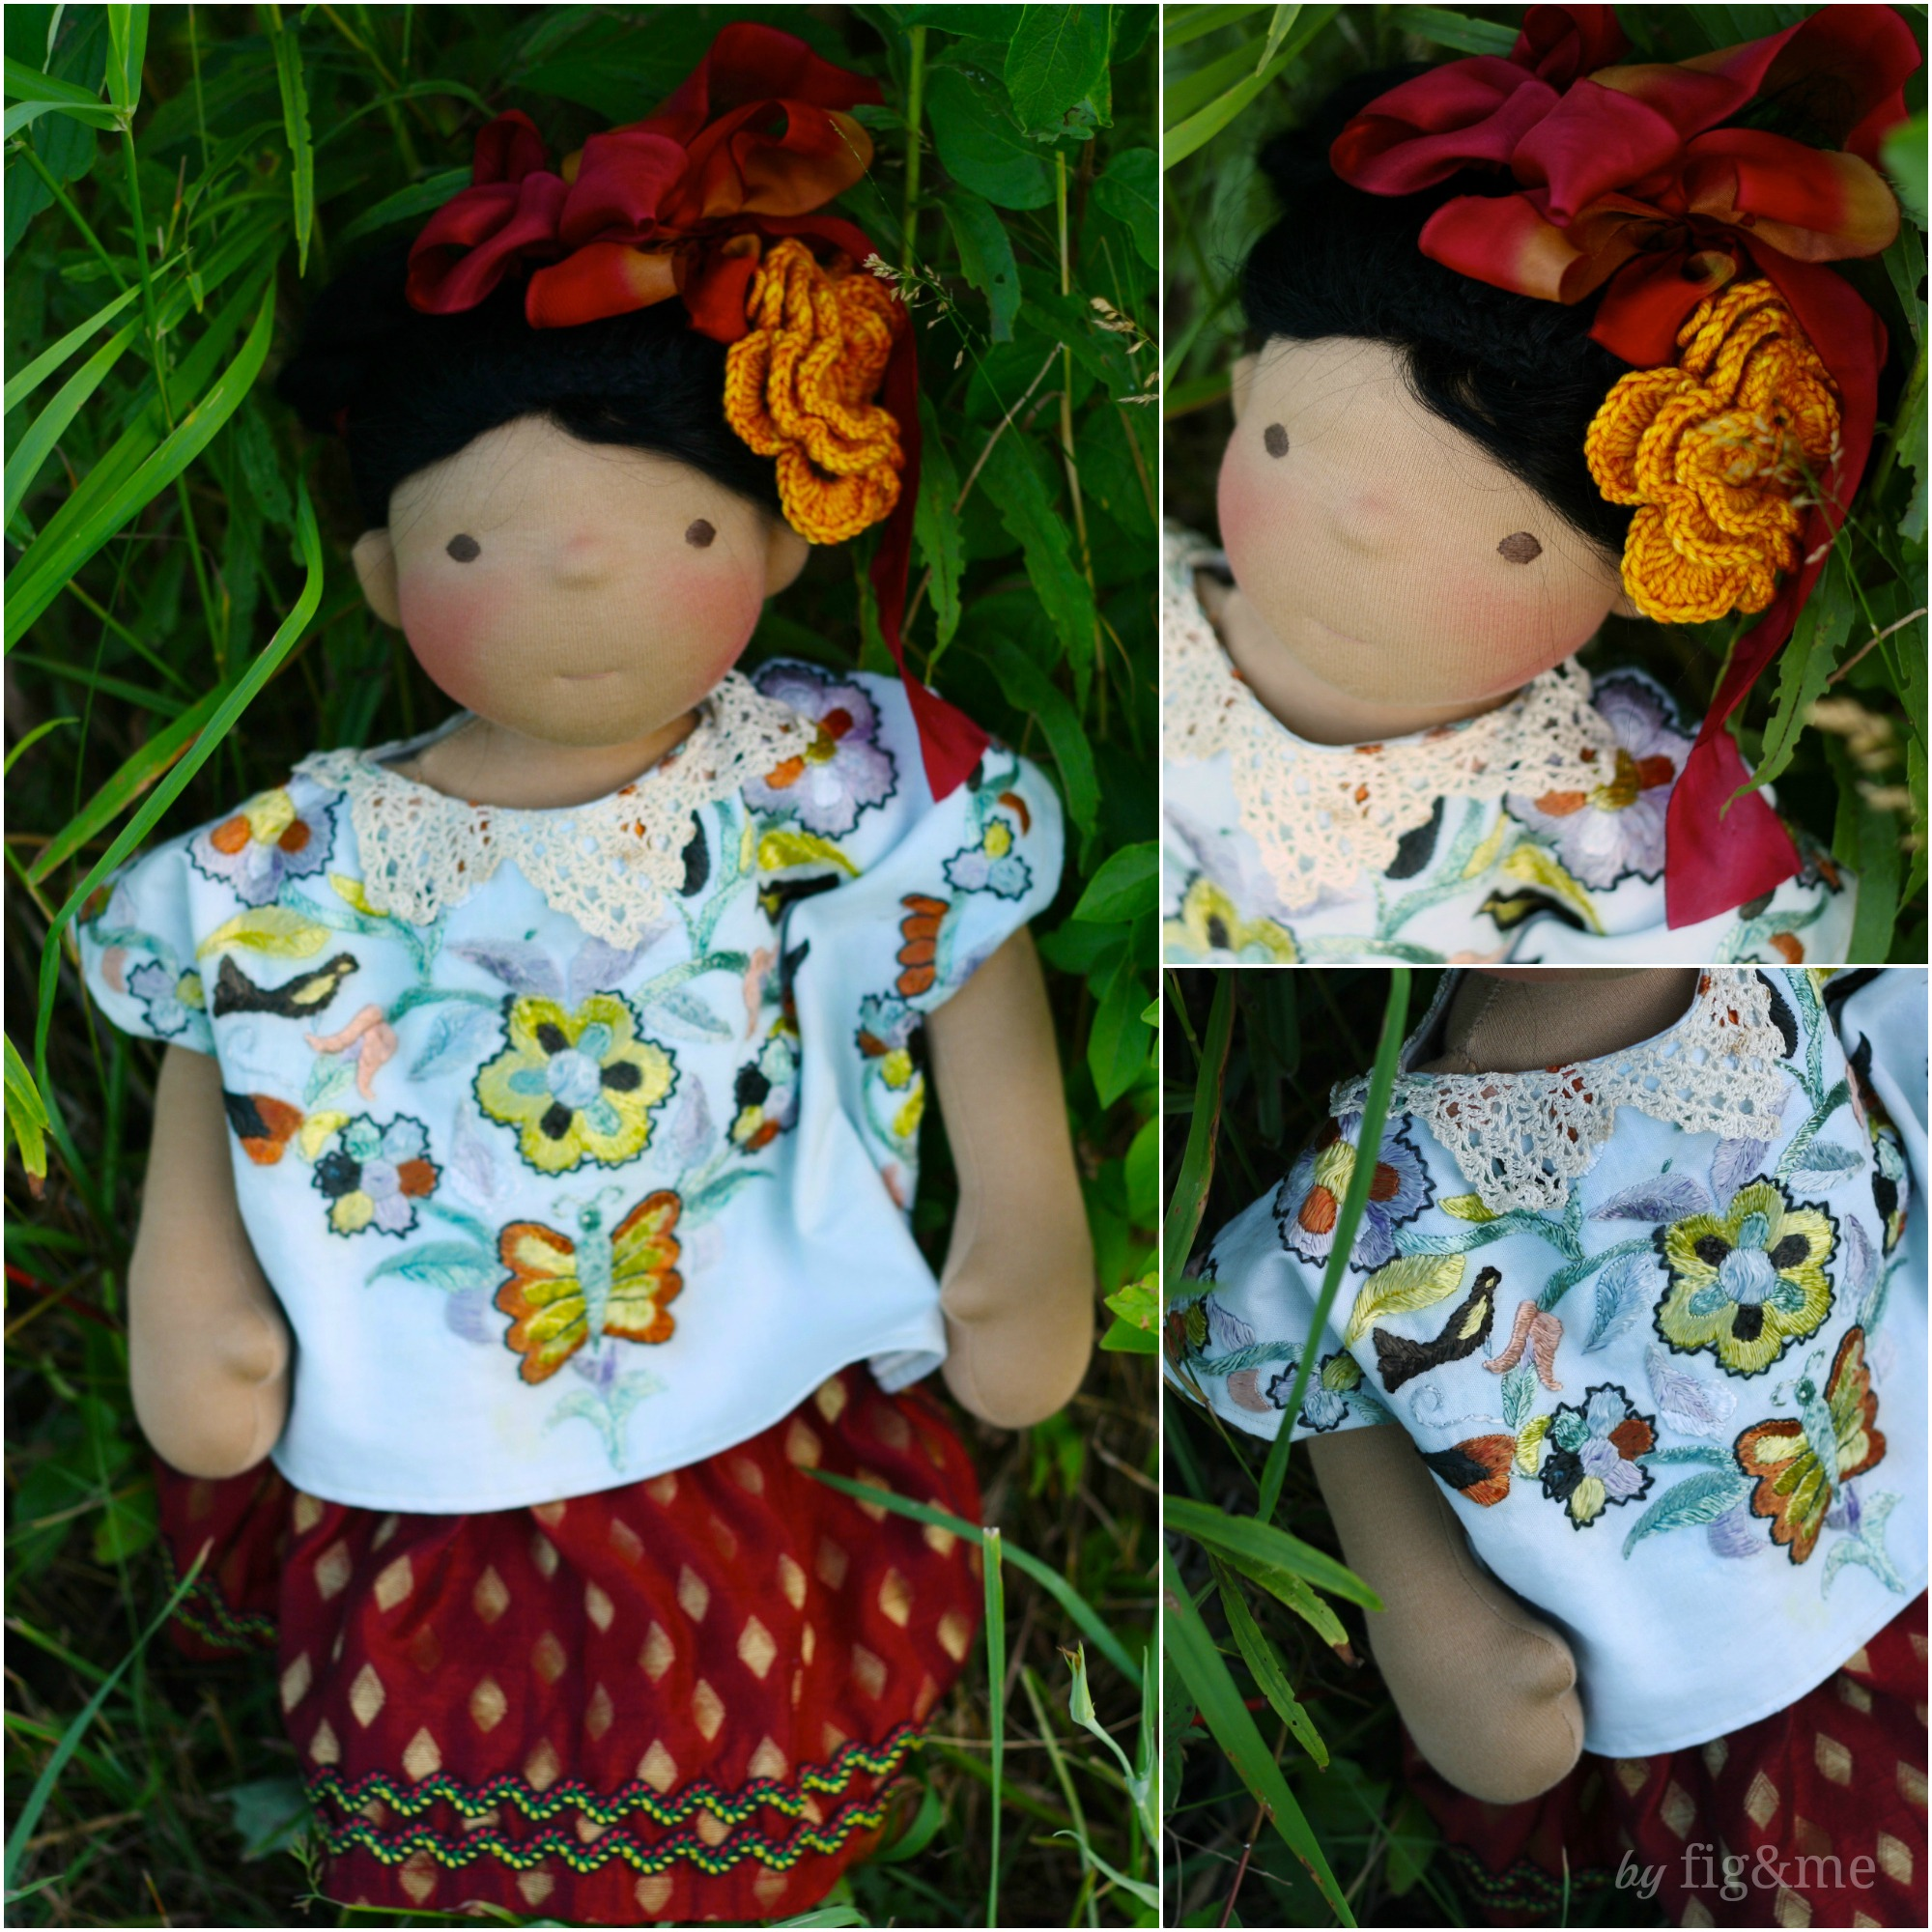 Little Frida in her huipil and rabona, by Fig and Me.